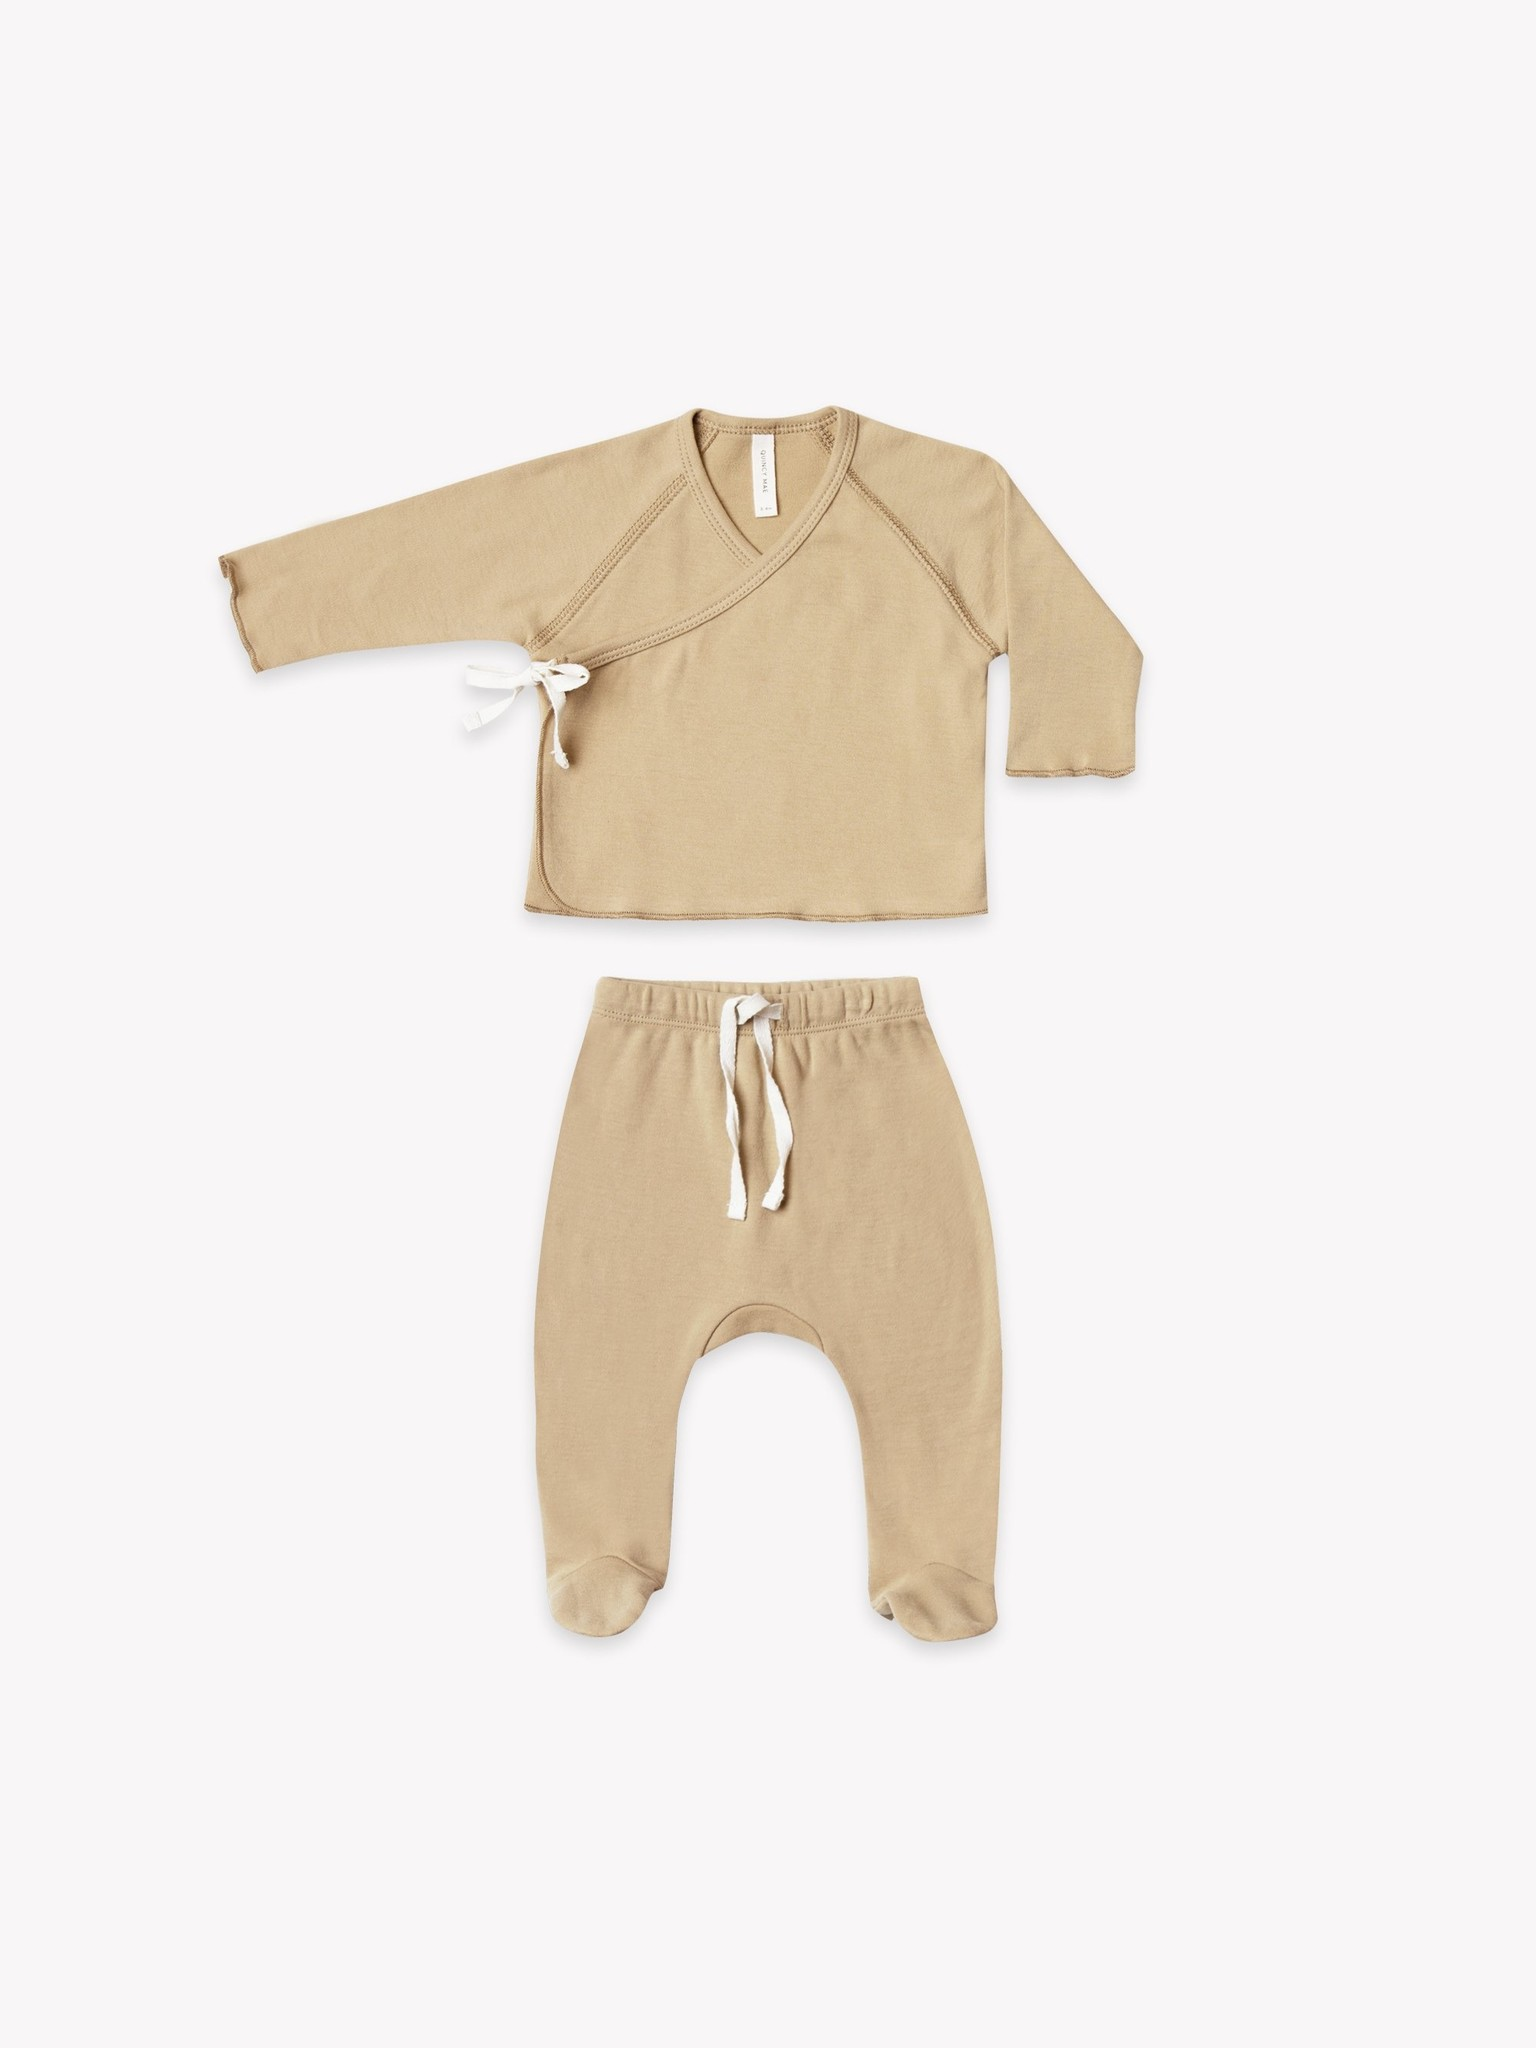 Quincy Mae Kimono Top + Footed Pant Set - organic brushed jersey (Honey)